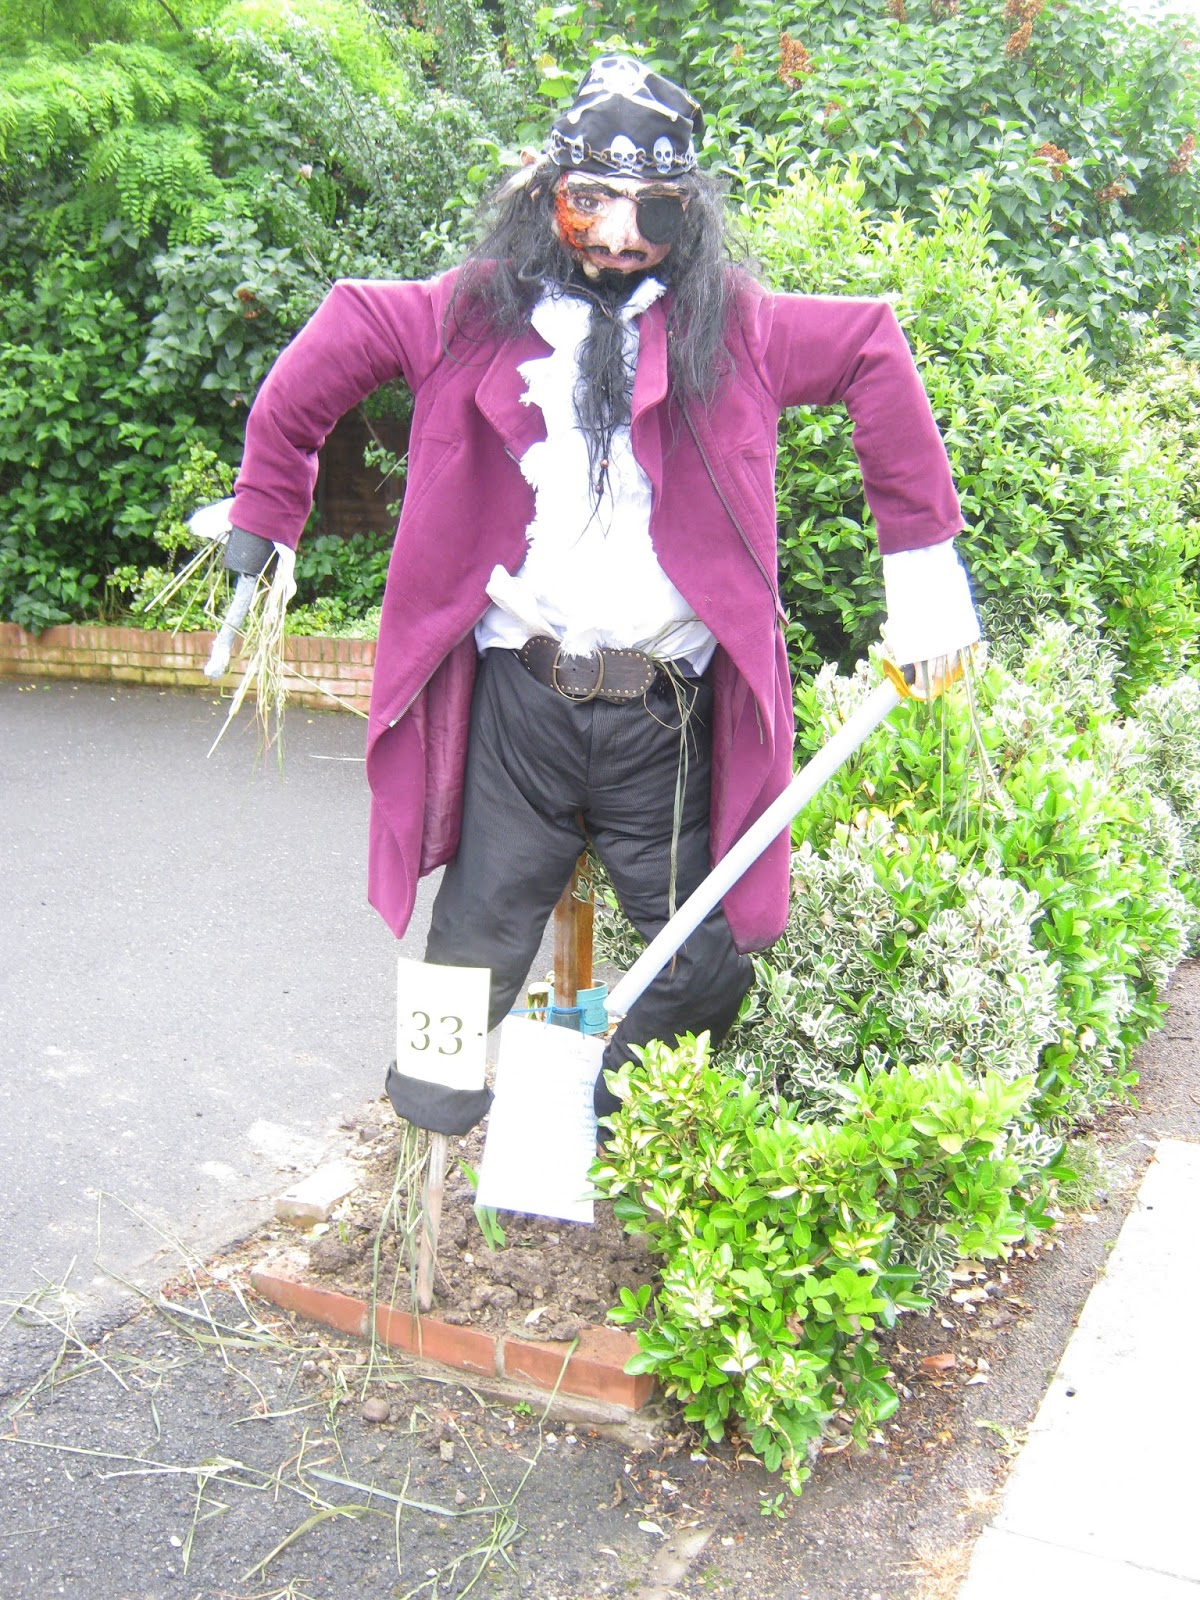 Of u0027Blackbeard Bessantu0027 the judges said u201cgreat attention to detail on the face; a scary scarecrow that we can see in a fieldu201d. & Loughton Scarecrow Trail 2013: The Winners u2013 What the Judges Said.